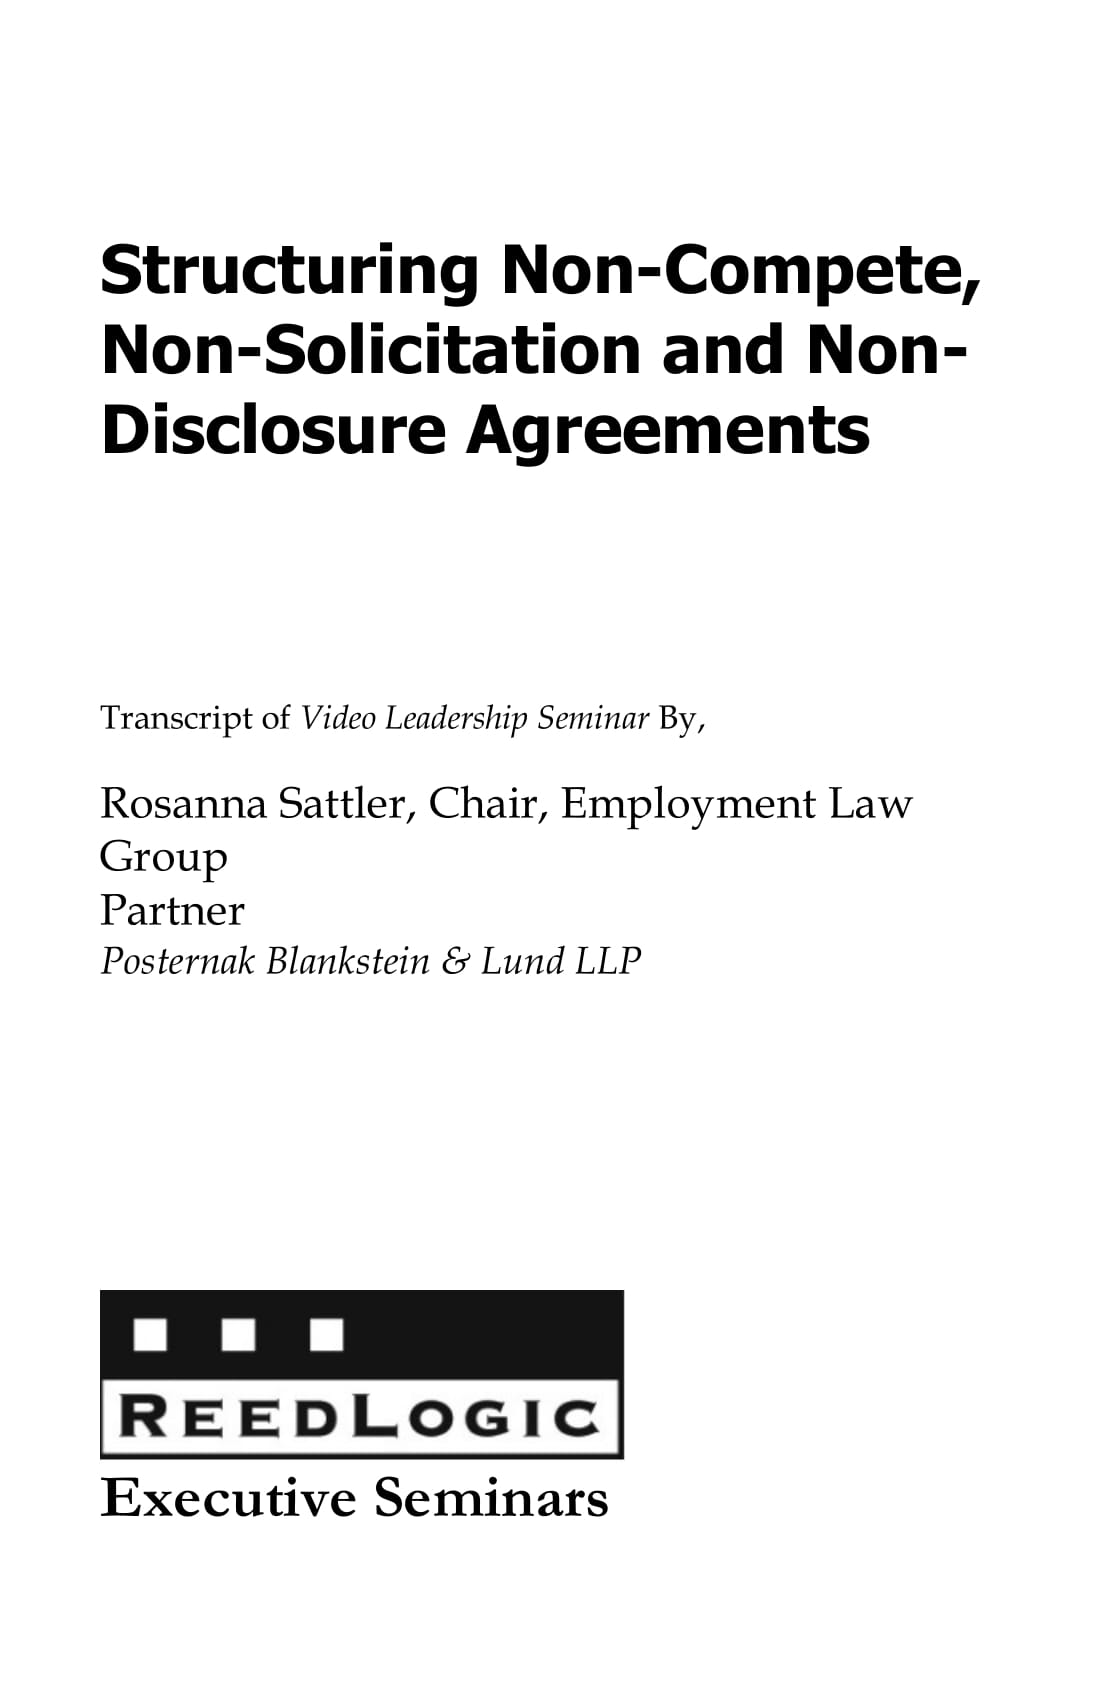 non solicitation and non disclosure agreement example